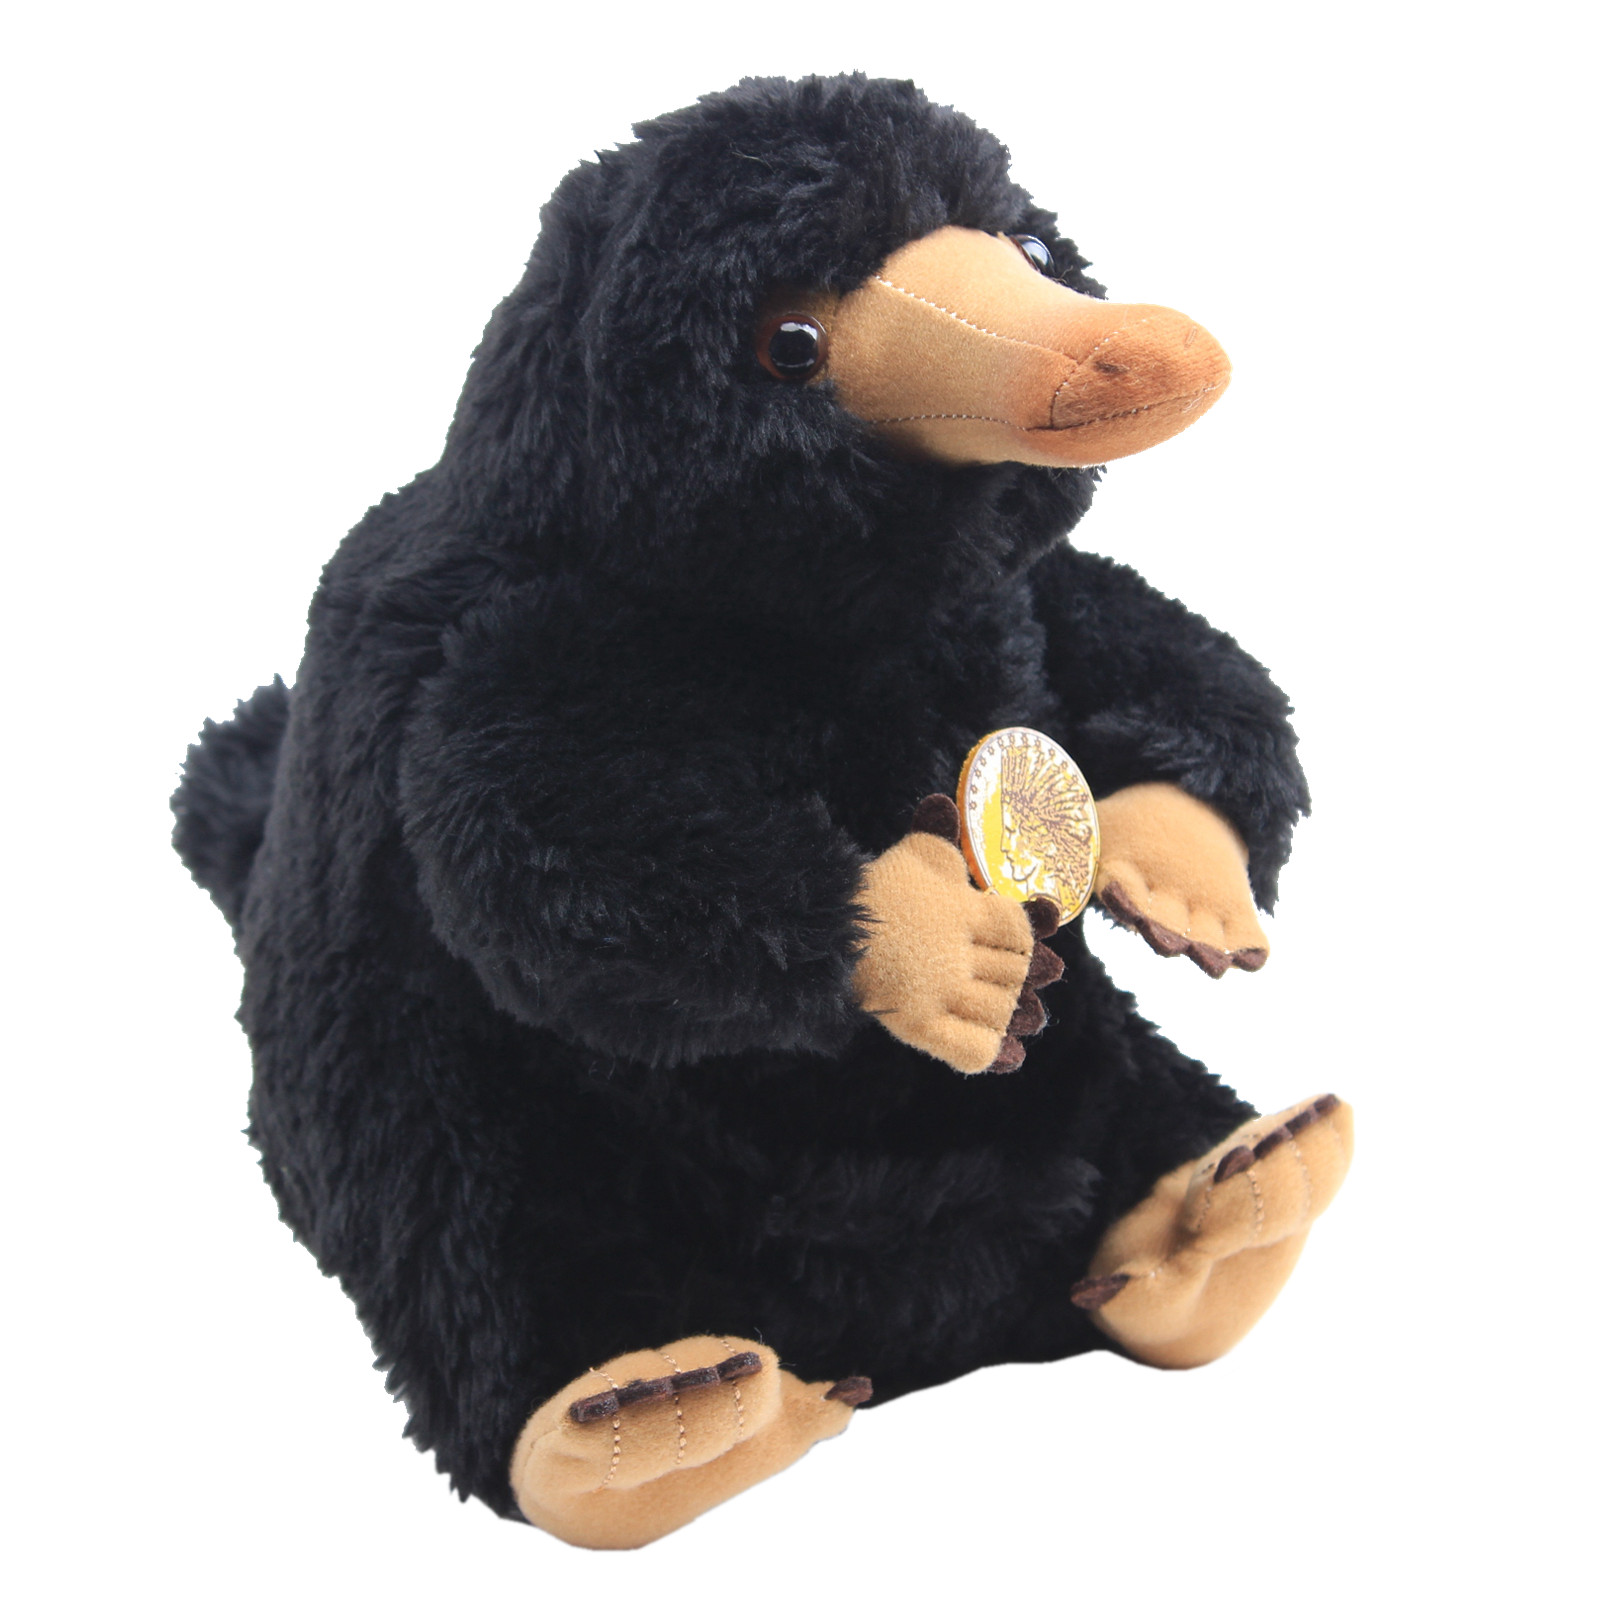 20cm Fantastic Beasts and Where to Find Them Niffler Collector's Plush Toys <font><b>Peluche</b></font> Black Duckbills Stuffed Animal Doll Kid Gift image